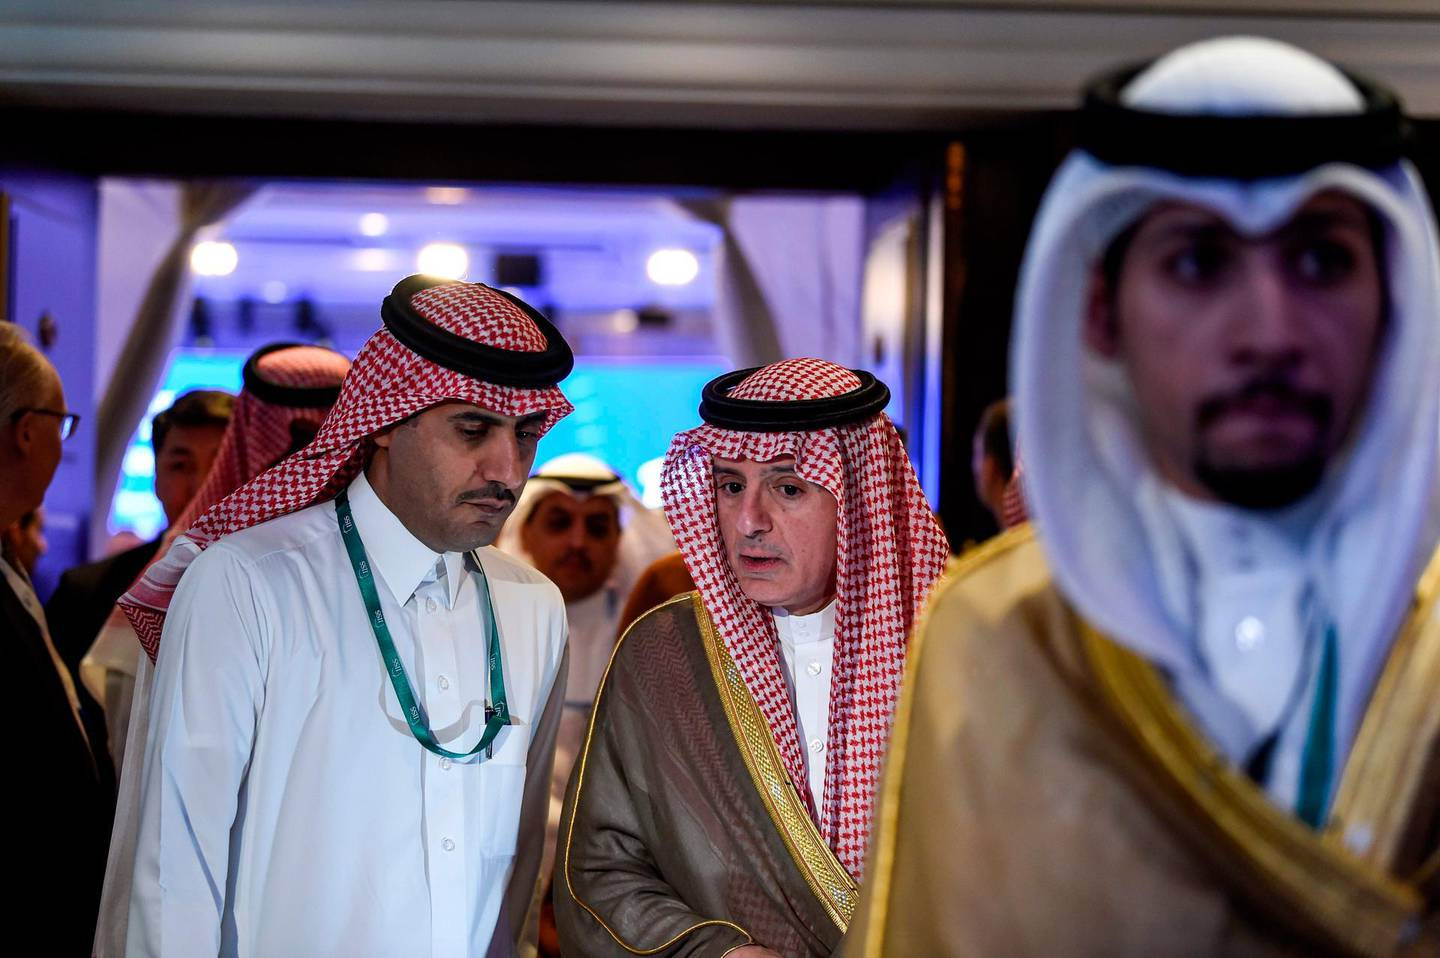 Adel Al-Jubeir (C), Saudi Minister of State for Foreign Affairs, attends the 15th Manama Dialogue, a regional security summit organized by the International Institute for Strategic Studies (IISS), in the Bahraini capital Manama on November 23, 2019.   / AFP / Mazen Mahdi